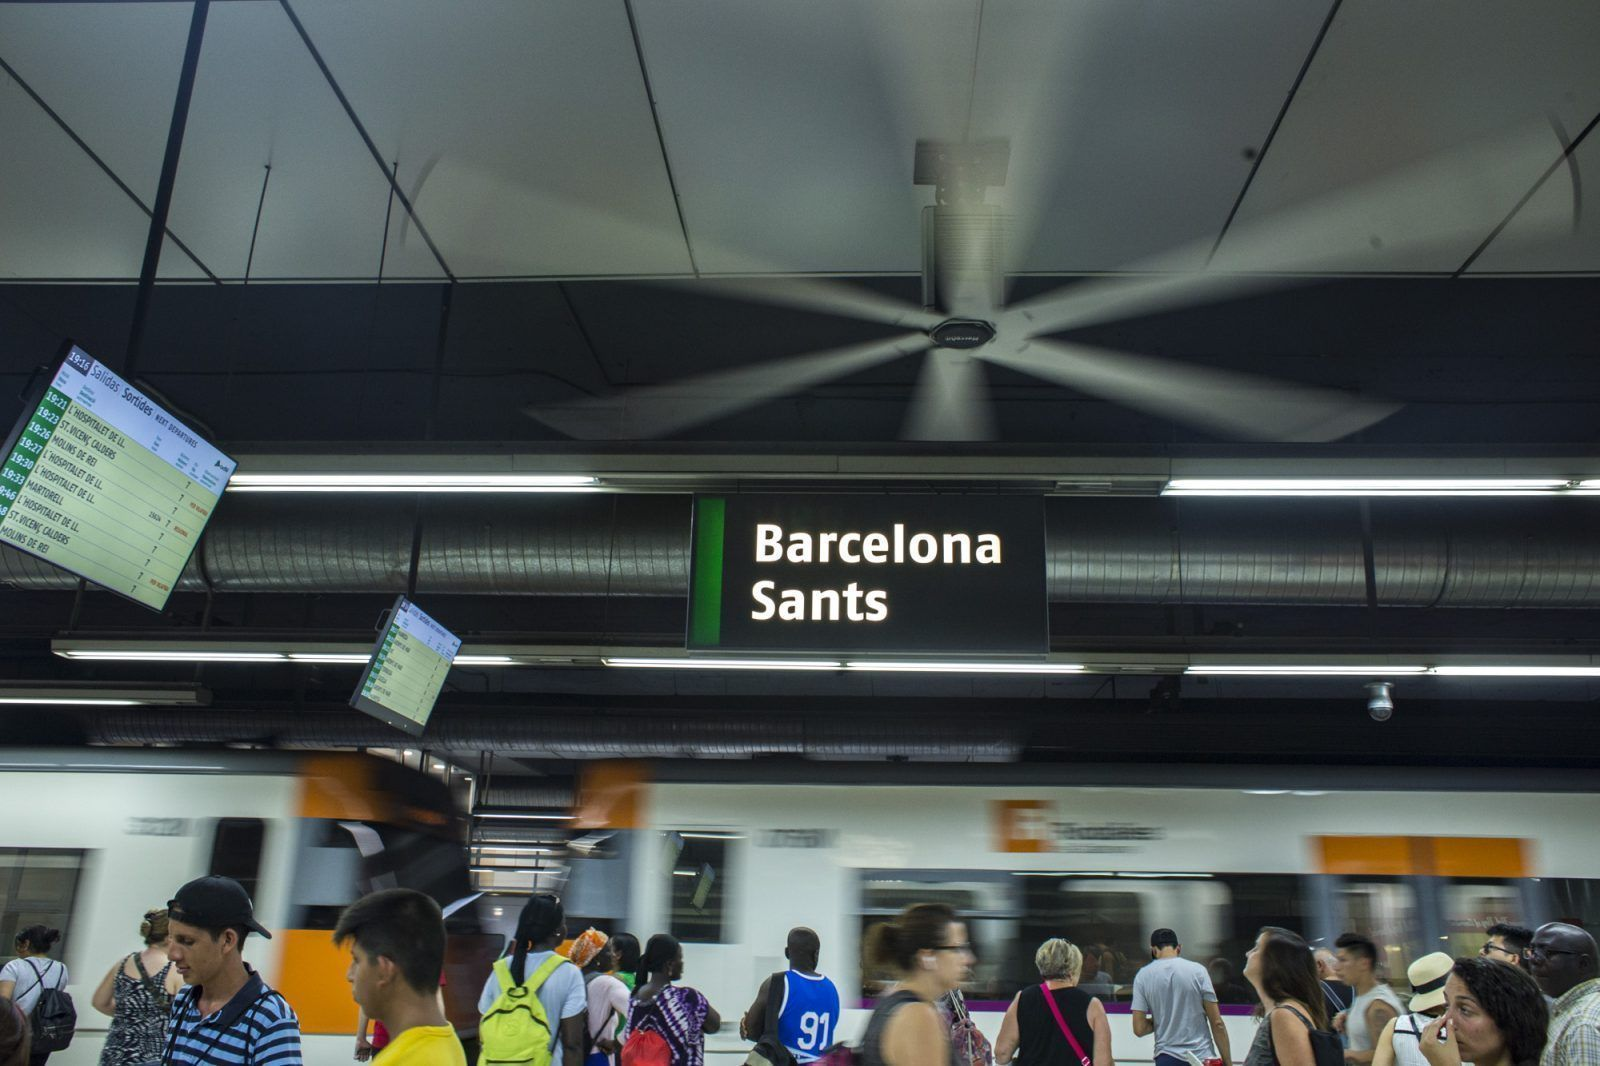 (English) Barcelona Sants train station